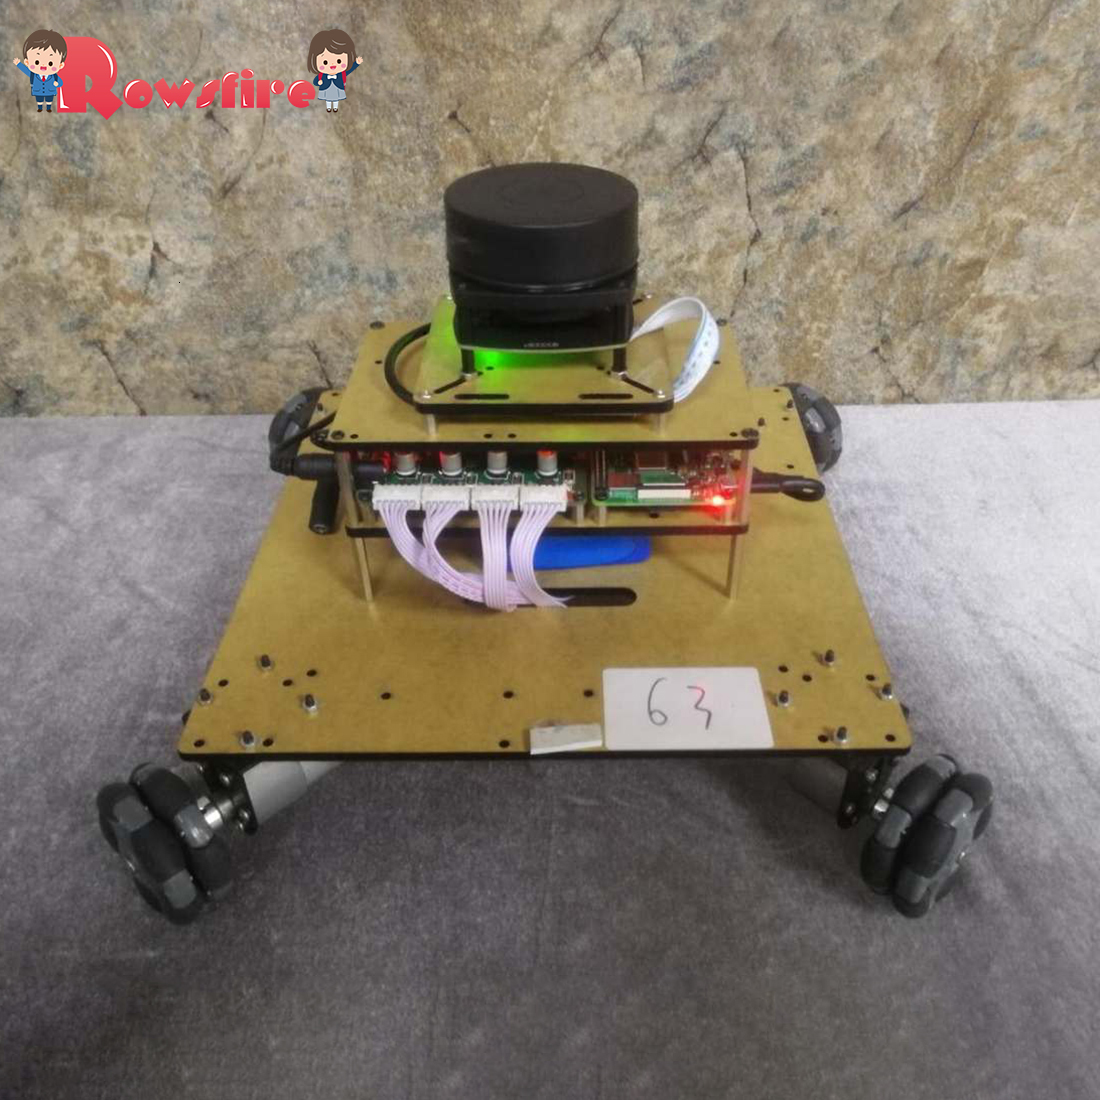 DIY Robot Operating System Ailibot Omnidirectional Robot Car Kit - 03 Version With High Quality